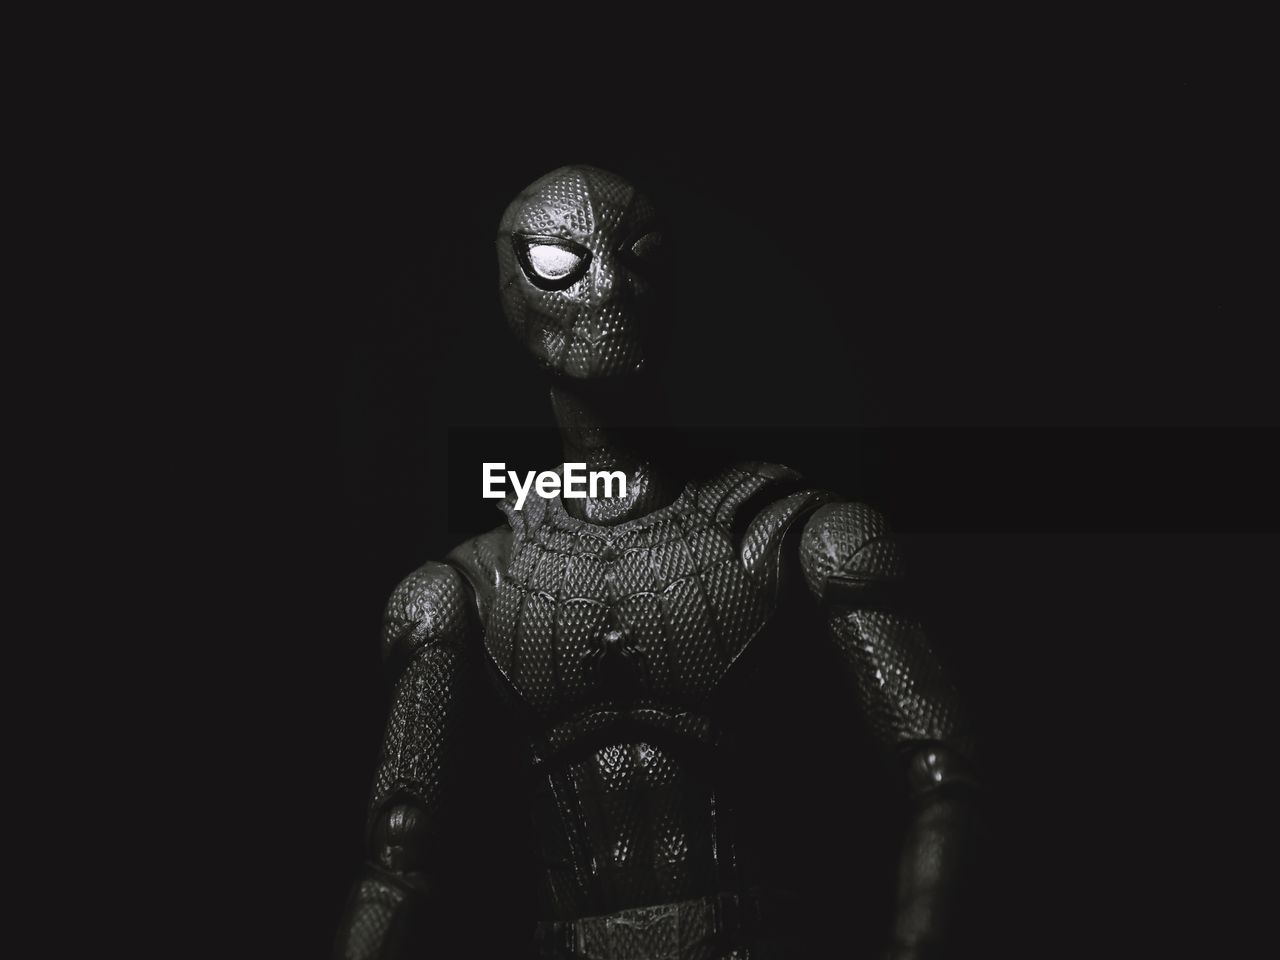 indoors, studio shot, black background, copy space, close-up, human representation, representation, no people, art and craft, creativity, dark, male likeness, sculpture, figurine, front view, statue, playing, security, aggression